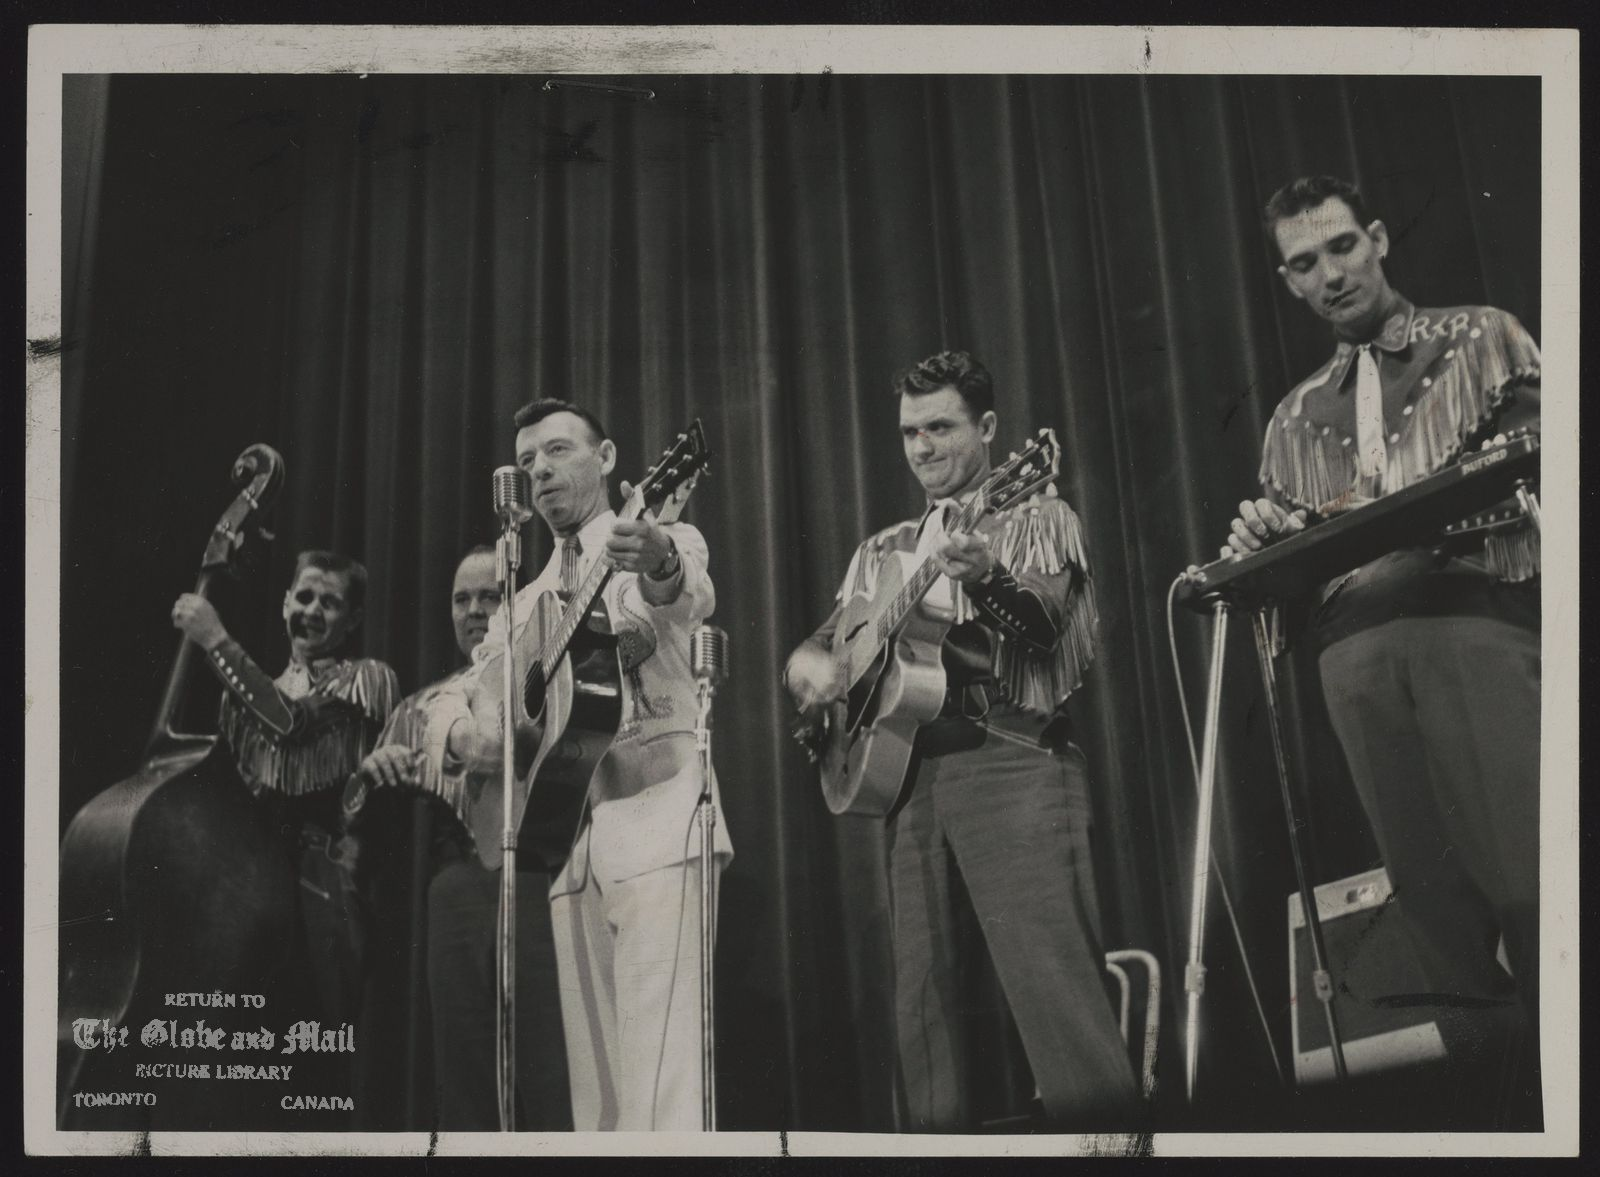 Hank SNOW [Personal appearances at vaudeville houses like Toronto's Casino help Hank Snow earn $250,000 a year. The boys warm up the audience. c. May 1957.]